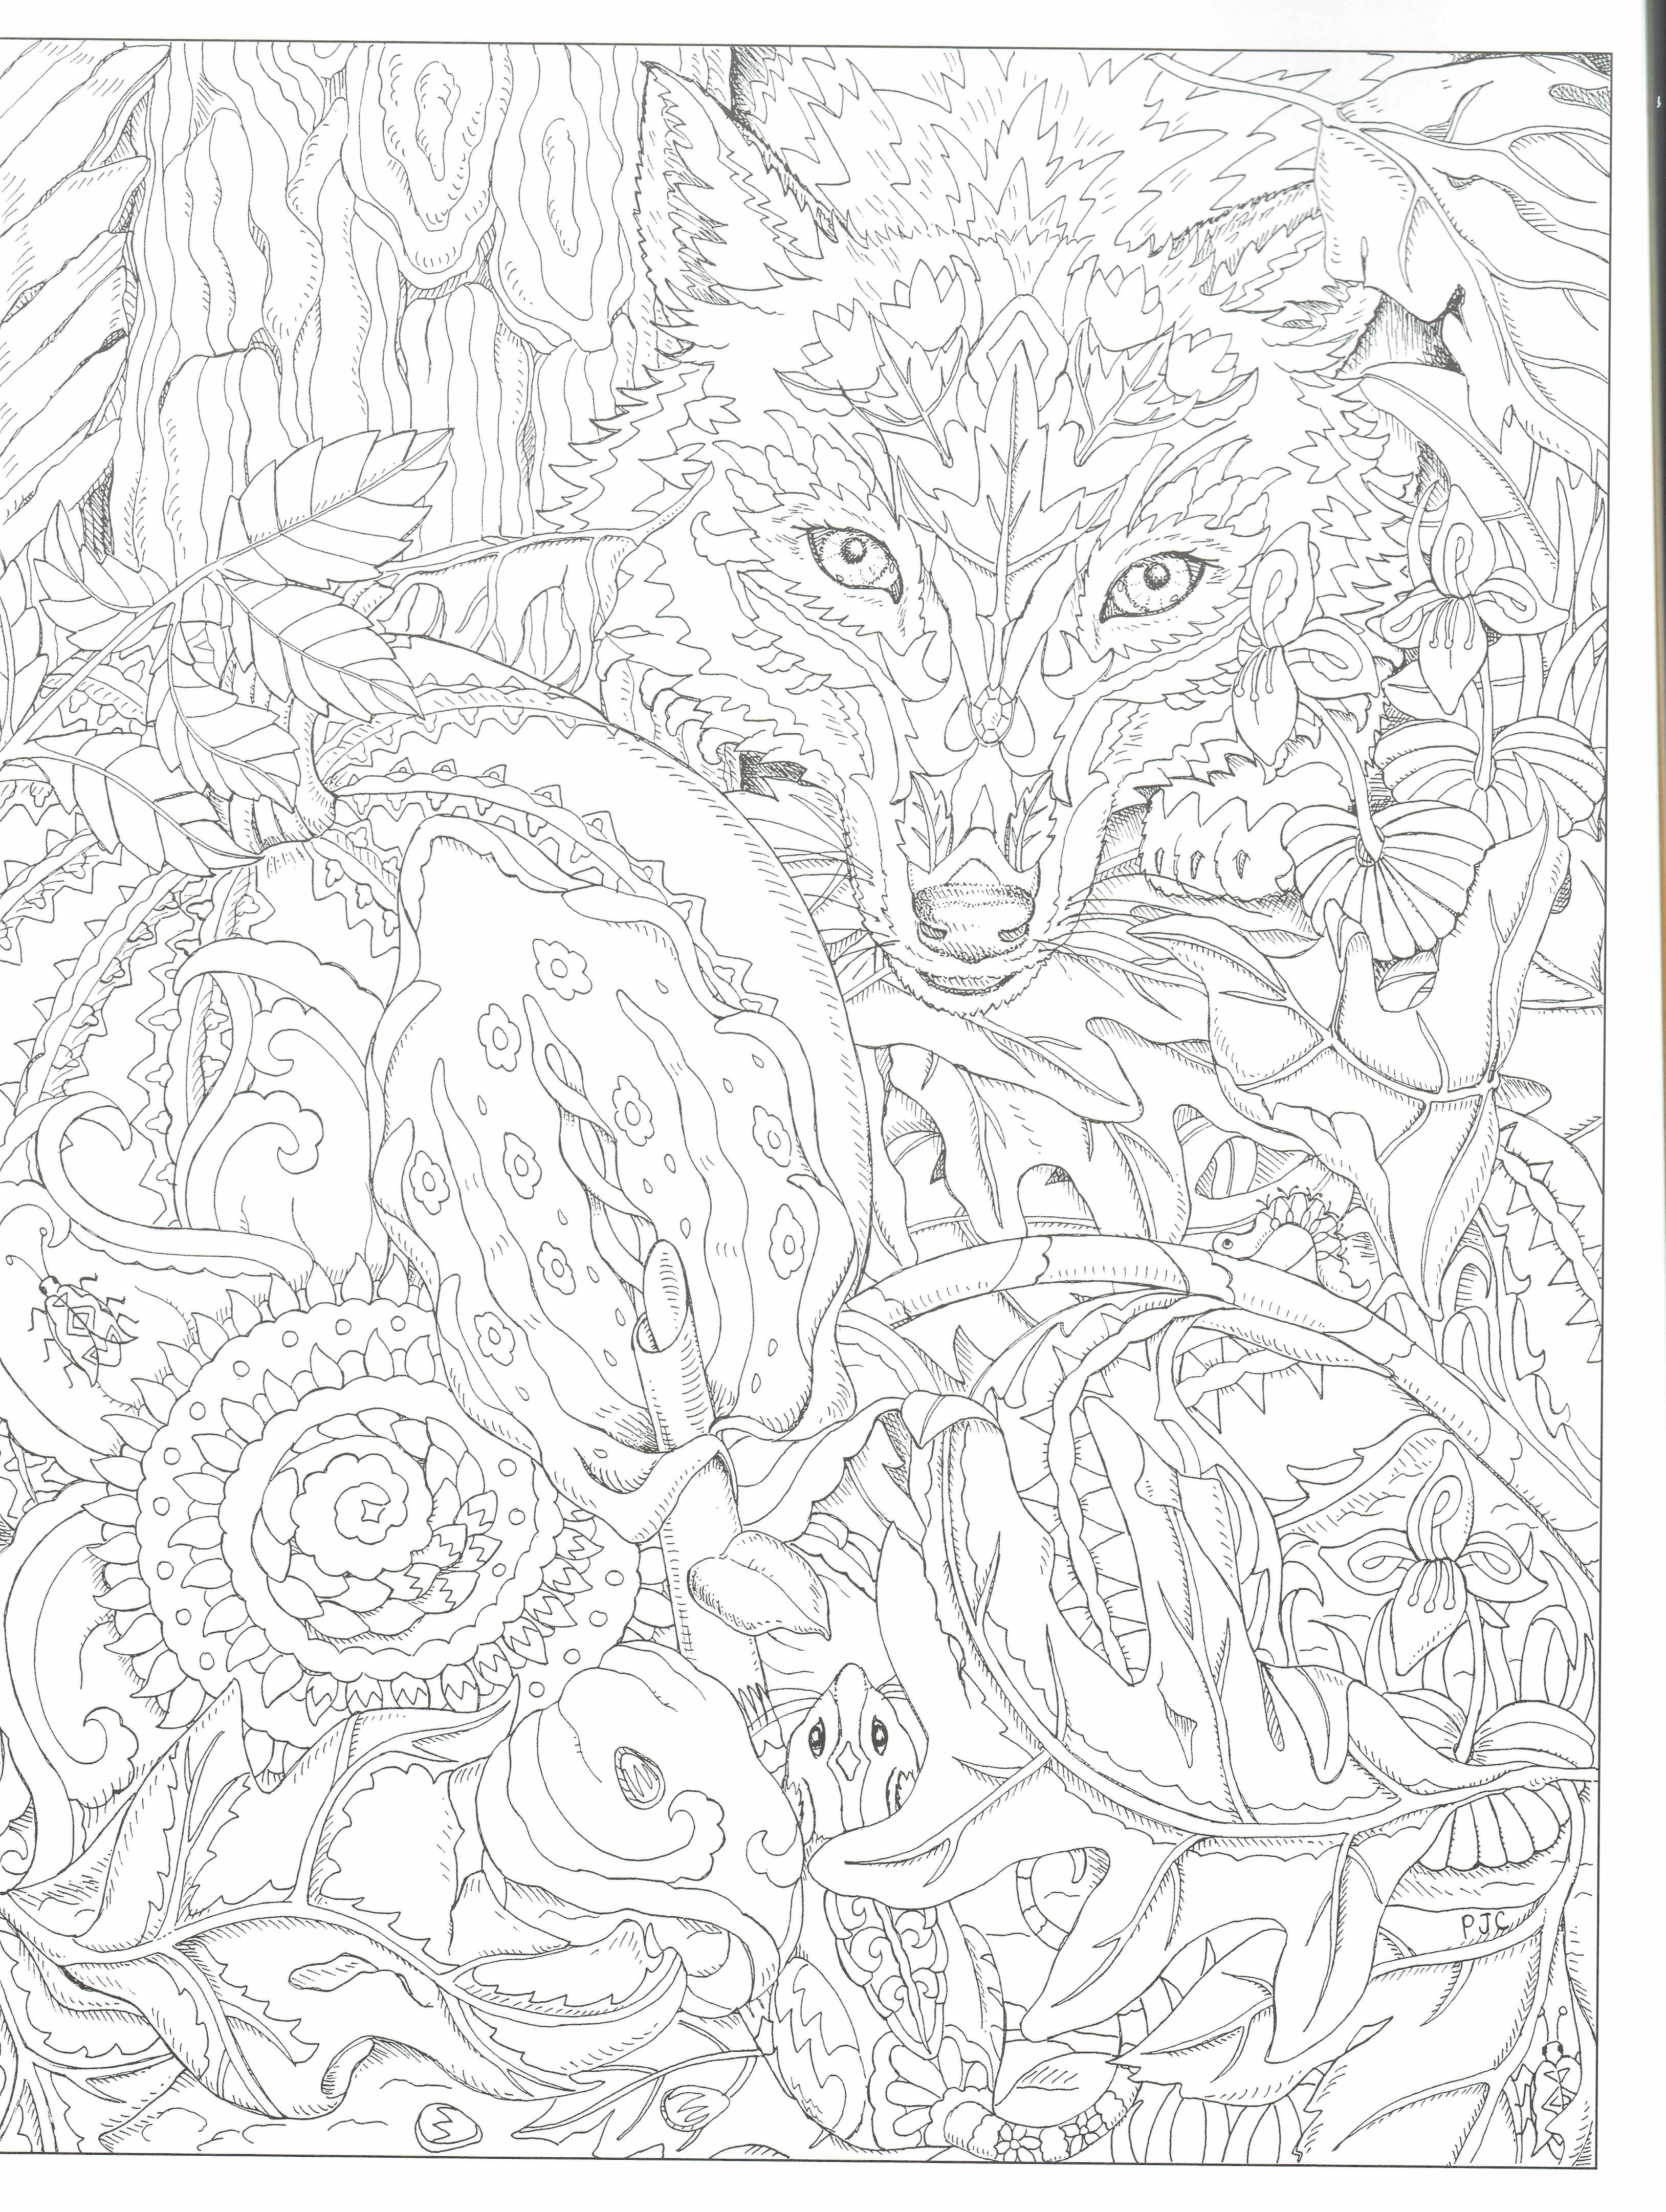 This Will Print On 11x17 Just As Nice As 8 5x11 Angel Coloring Pages Dover Coloring Pages Blank Coloring Pages